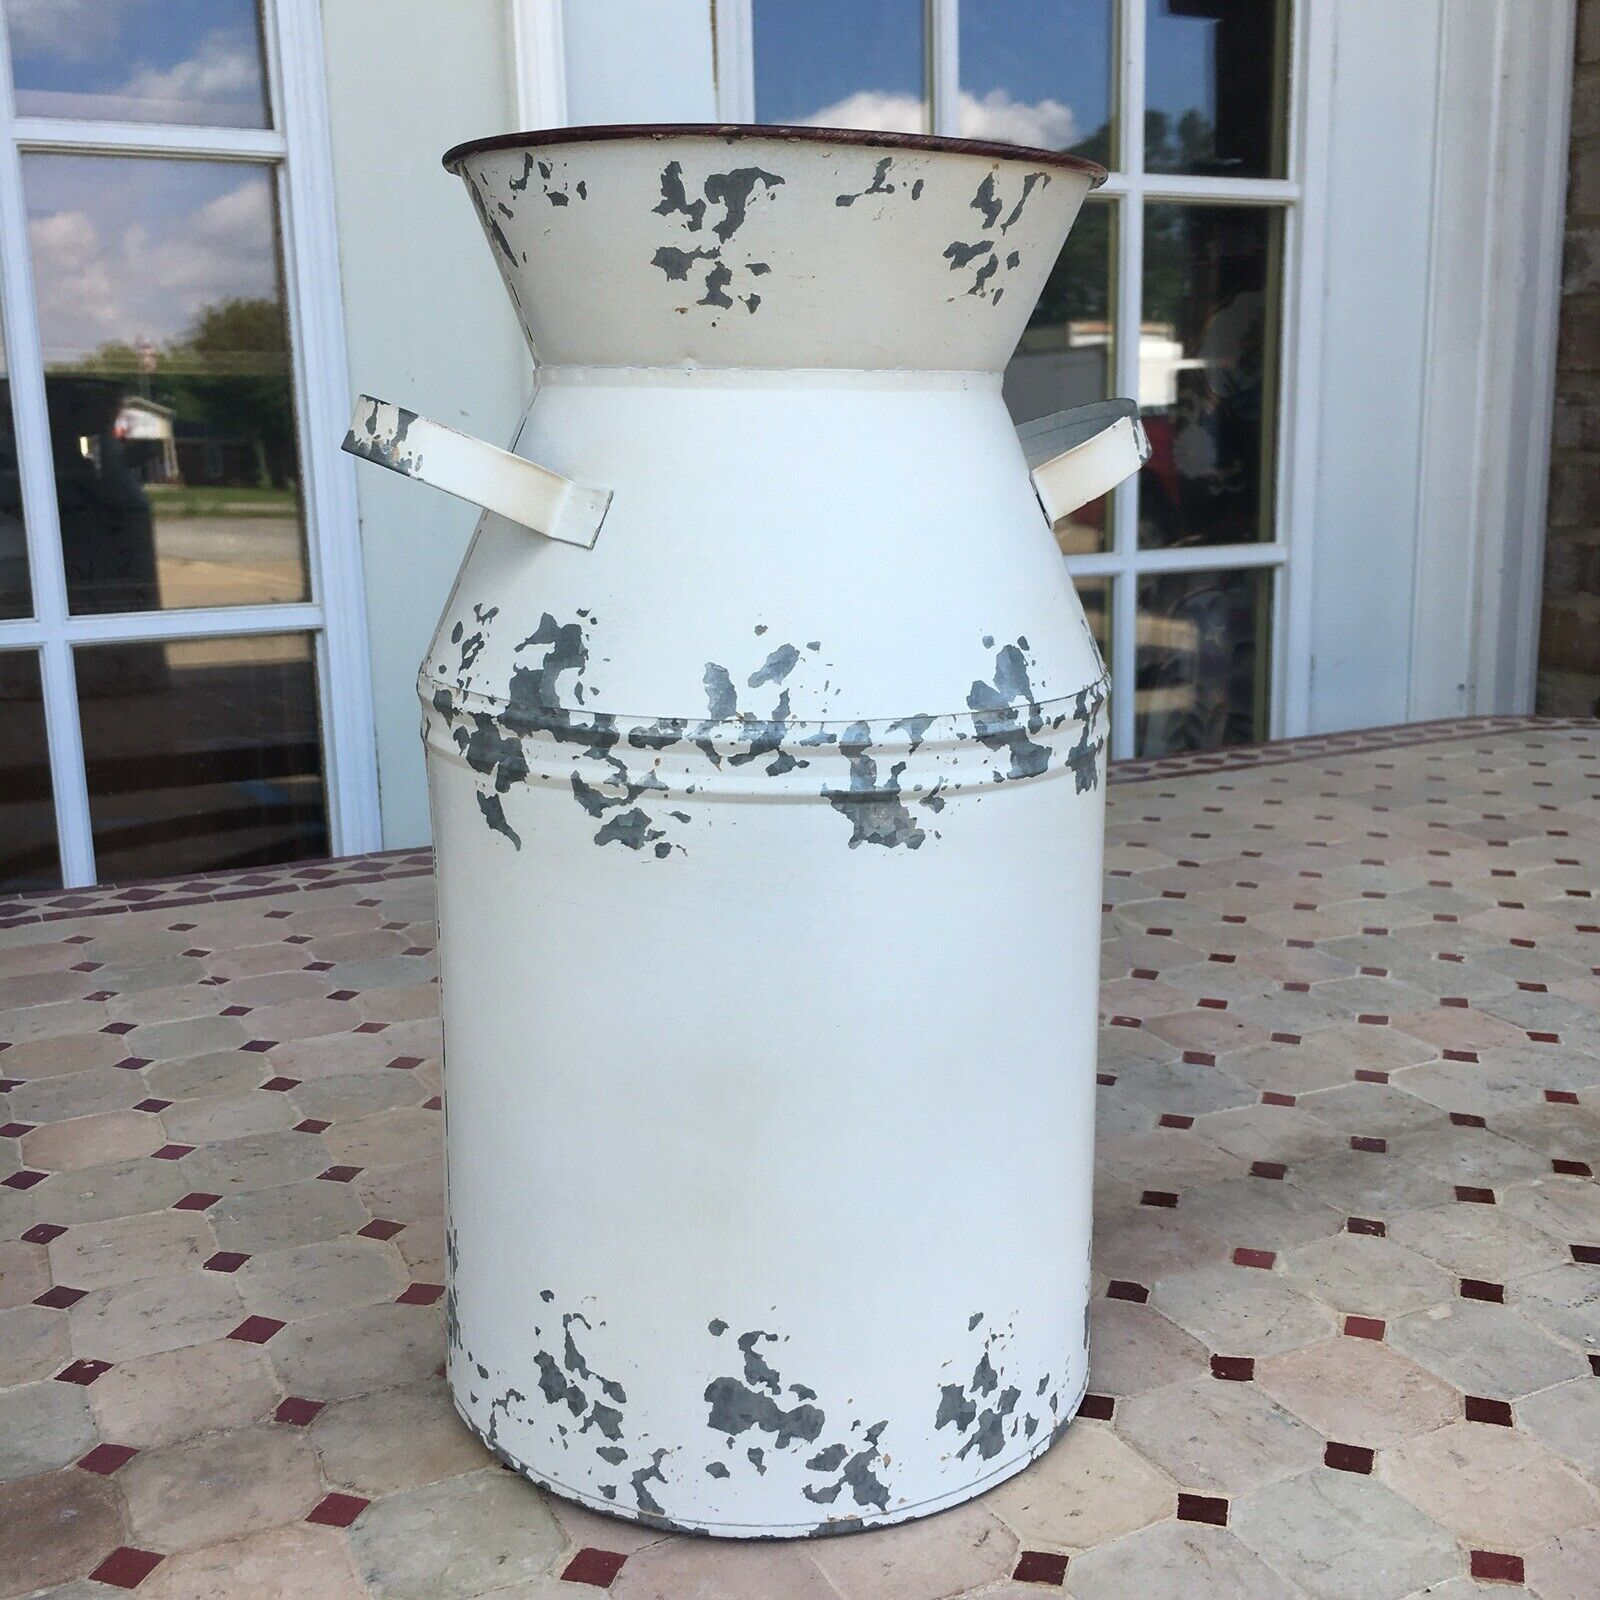 Metal Galvanized Milk Can Jug White Washed Seasons Greeting Farmhouse Christmas For Sale Online